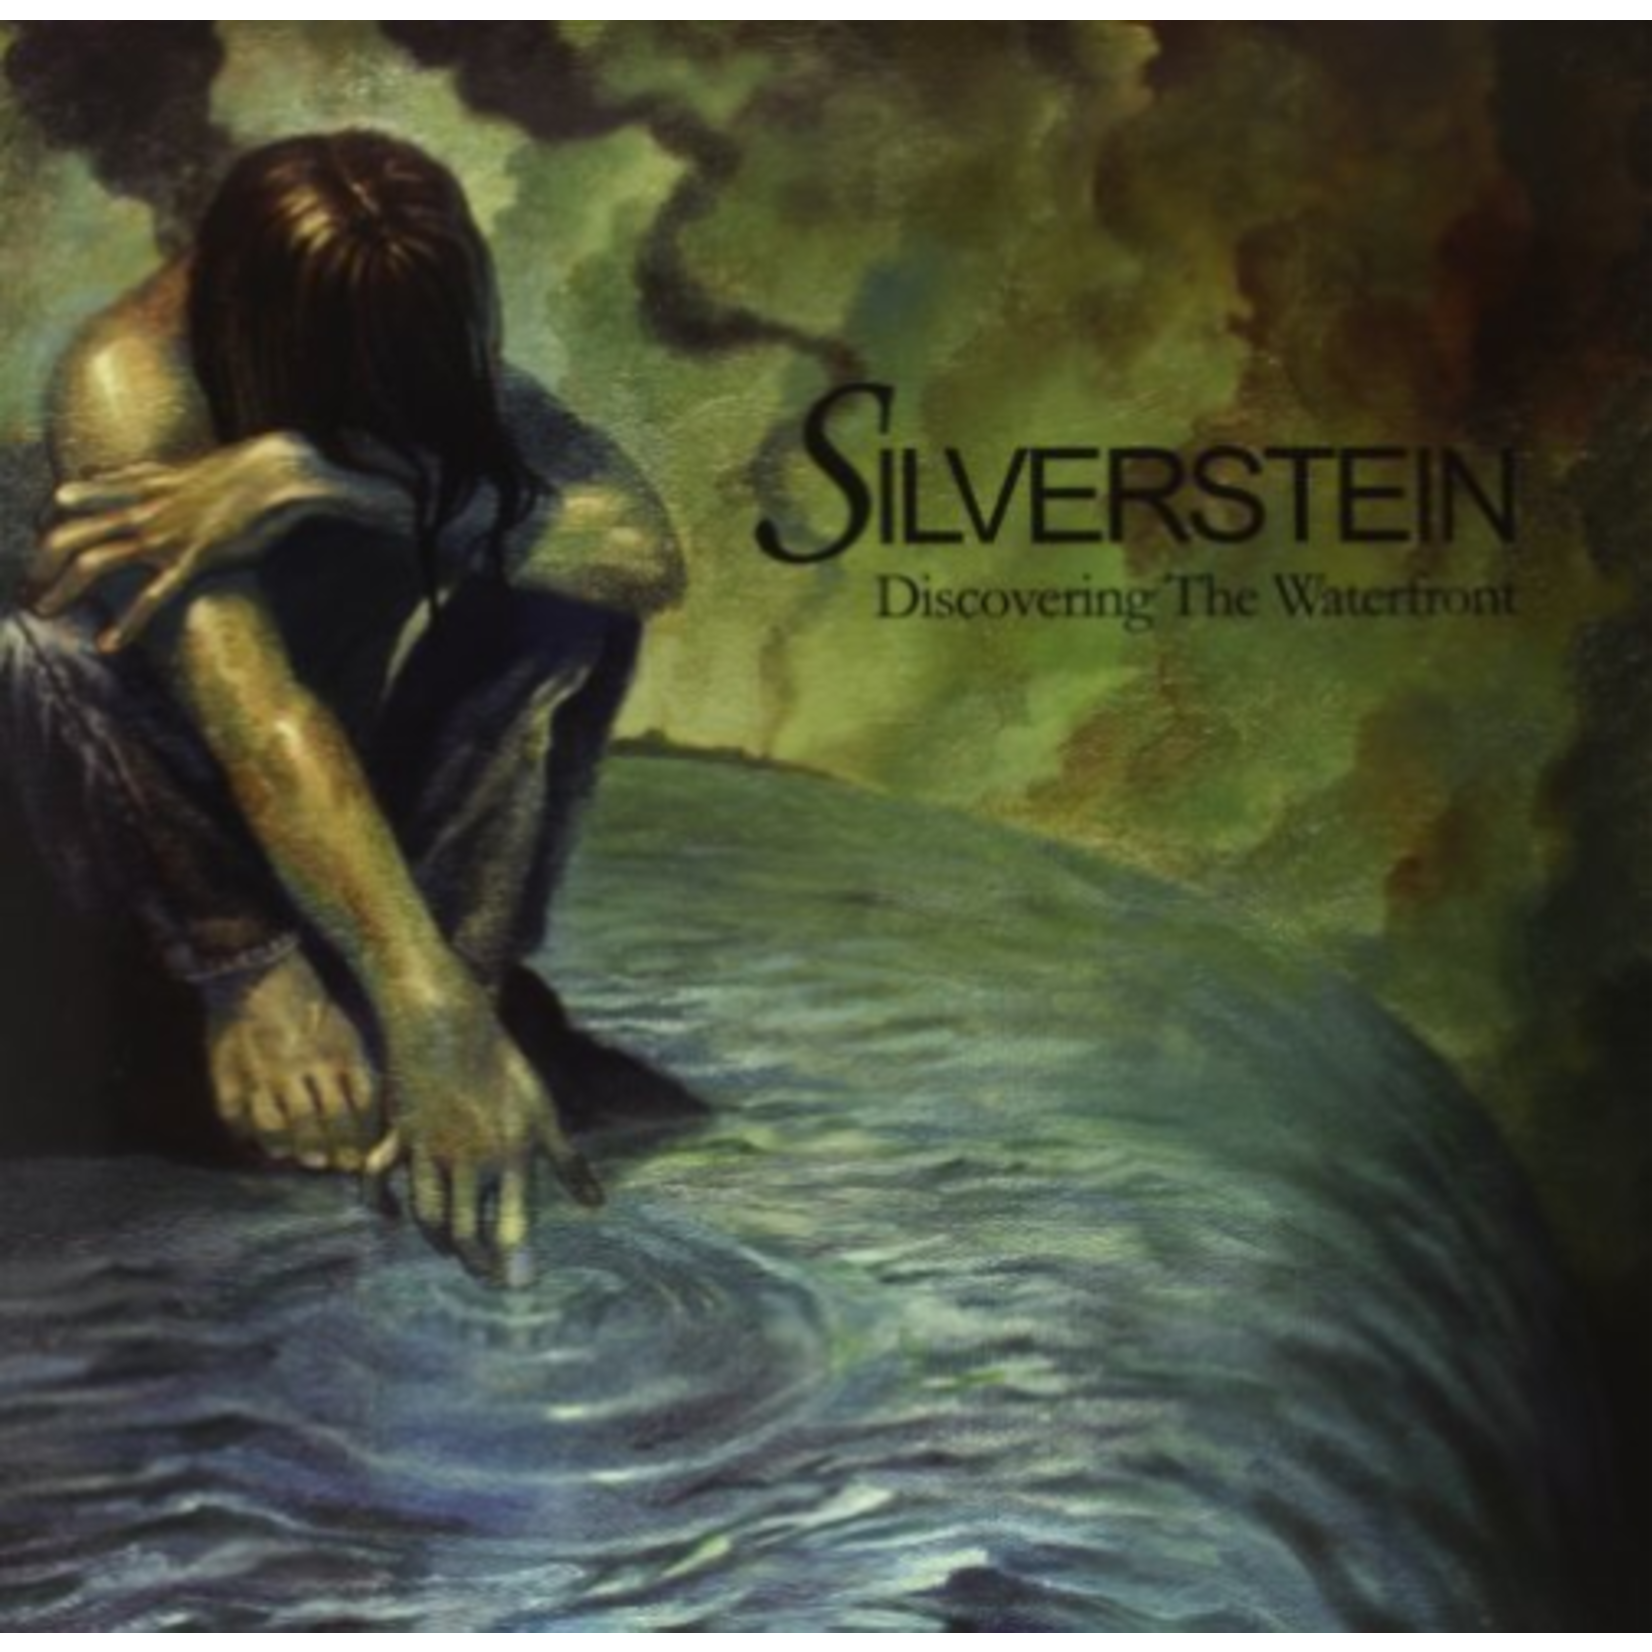 SILVERSTEIN DISCOVERING THE WATERFRONT